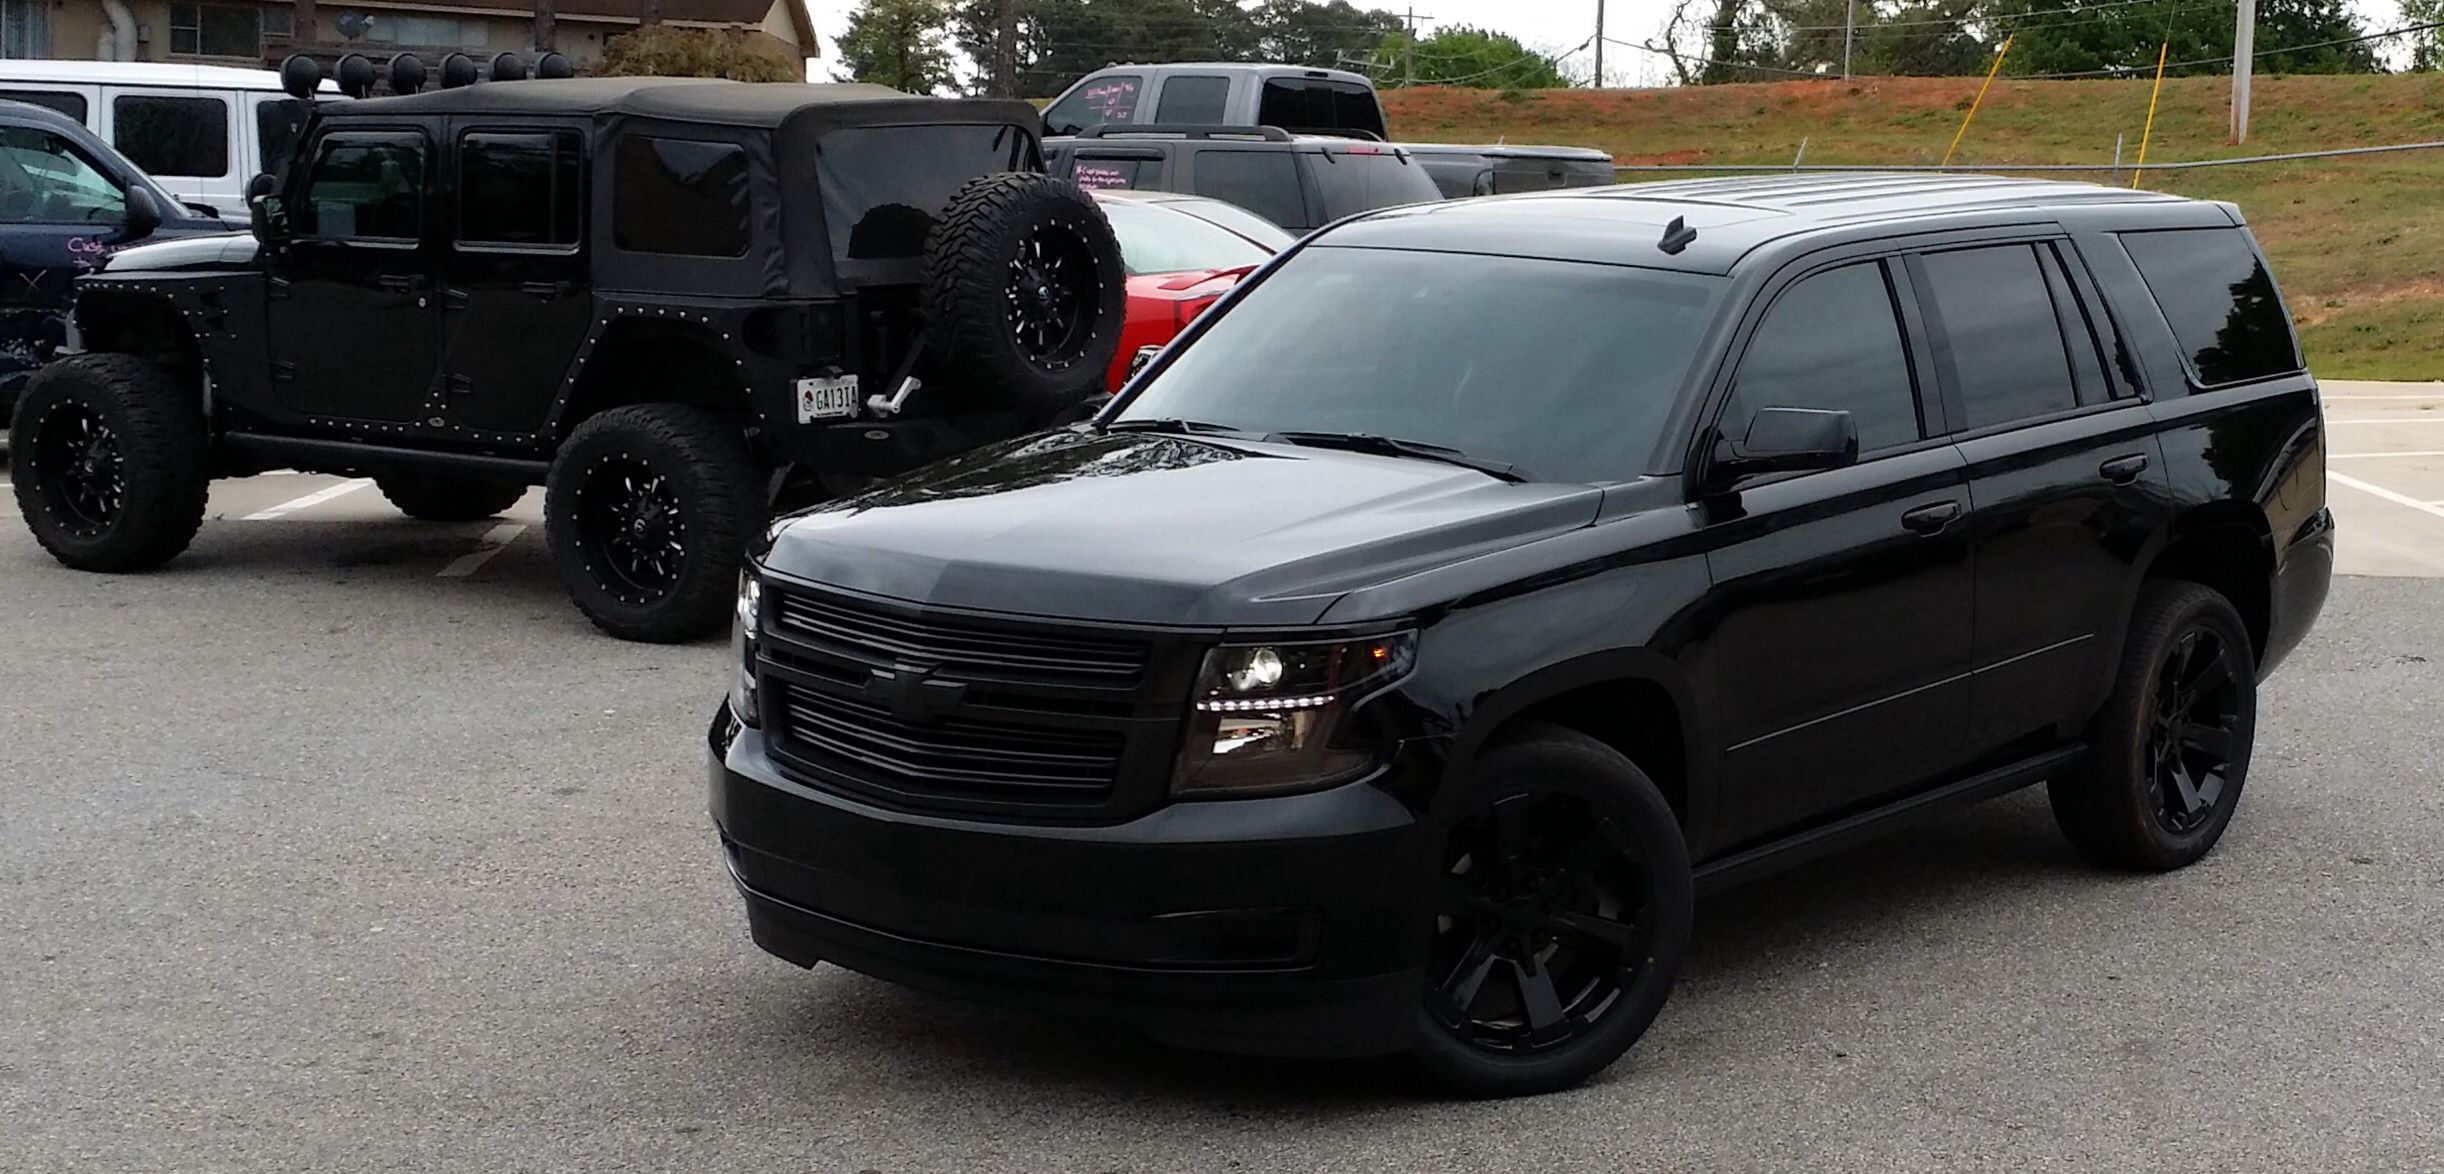 Pin By Andrea Villarreal On Cars And Motorcycles Chevrolet Tahoe